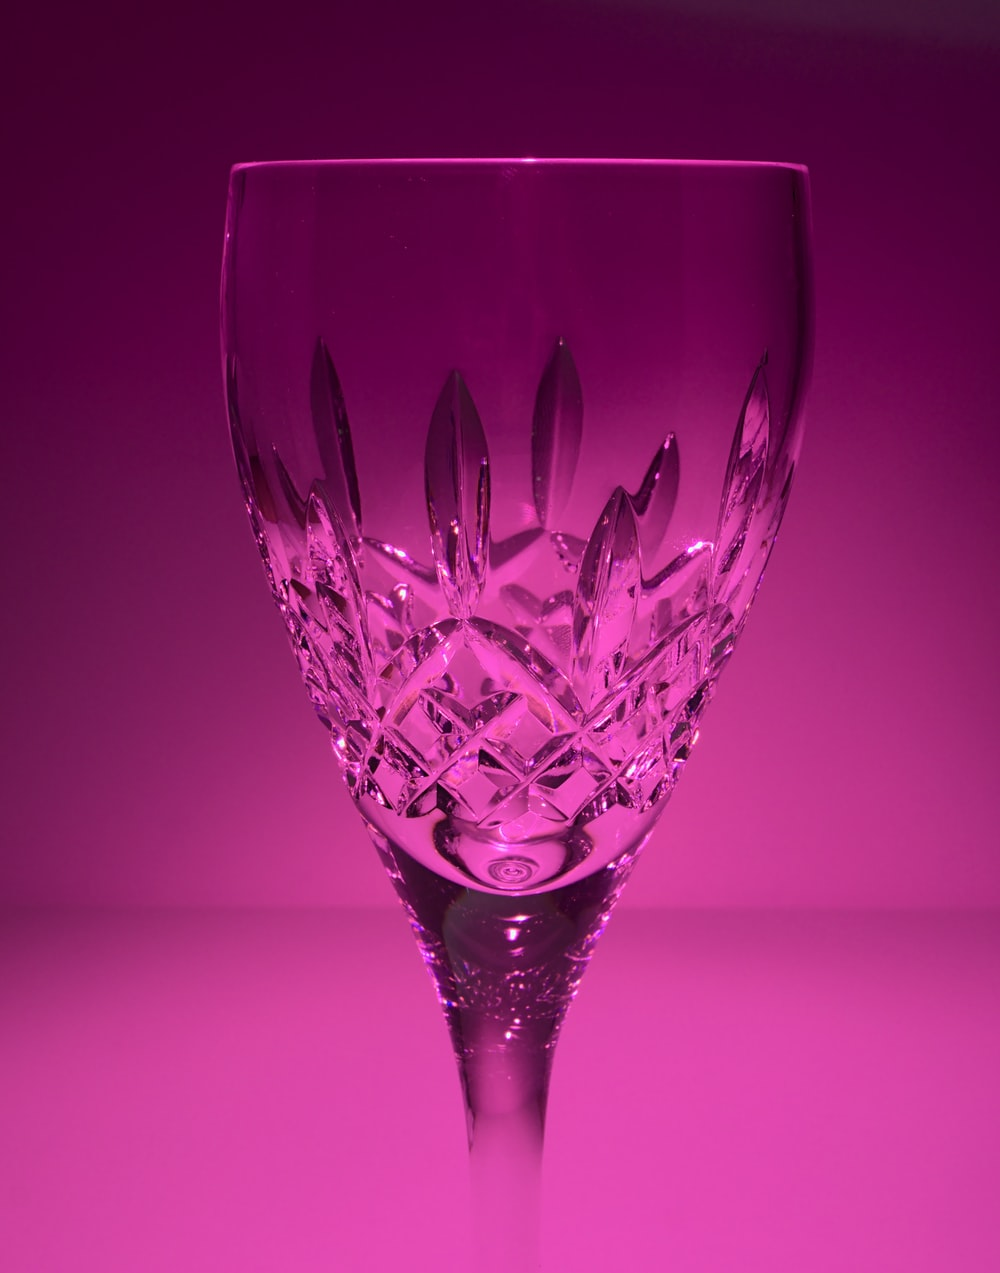 red wine glass on pink surface